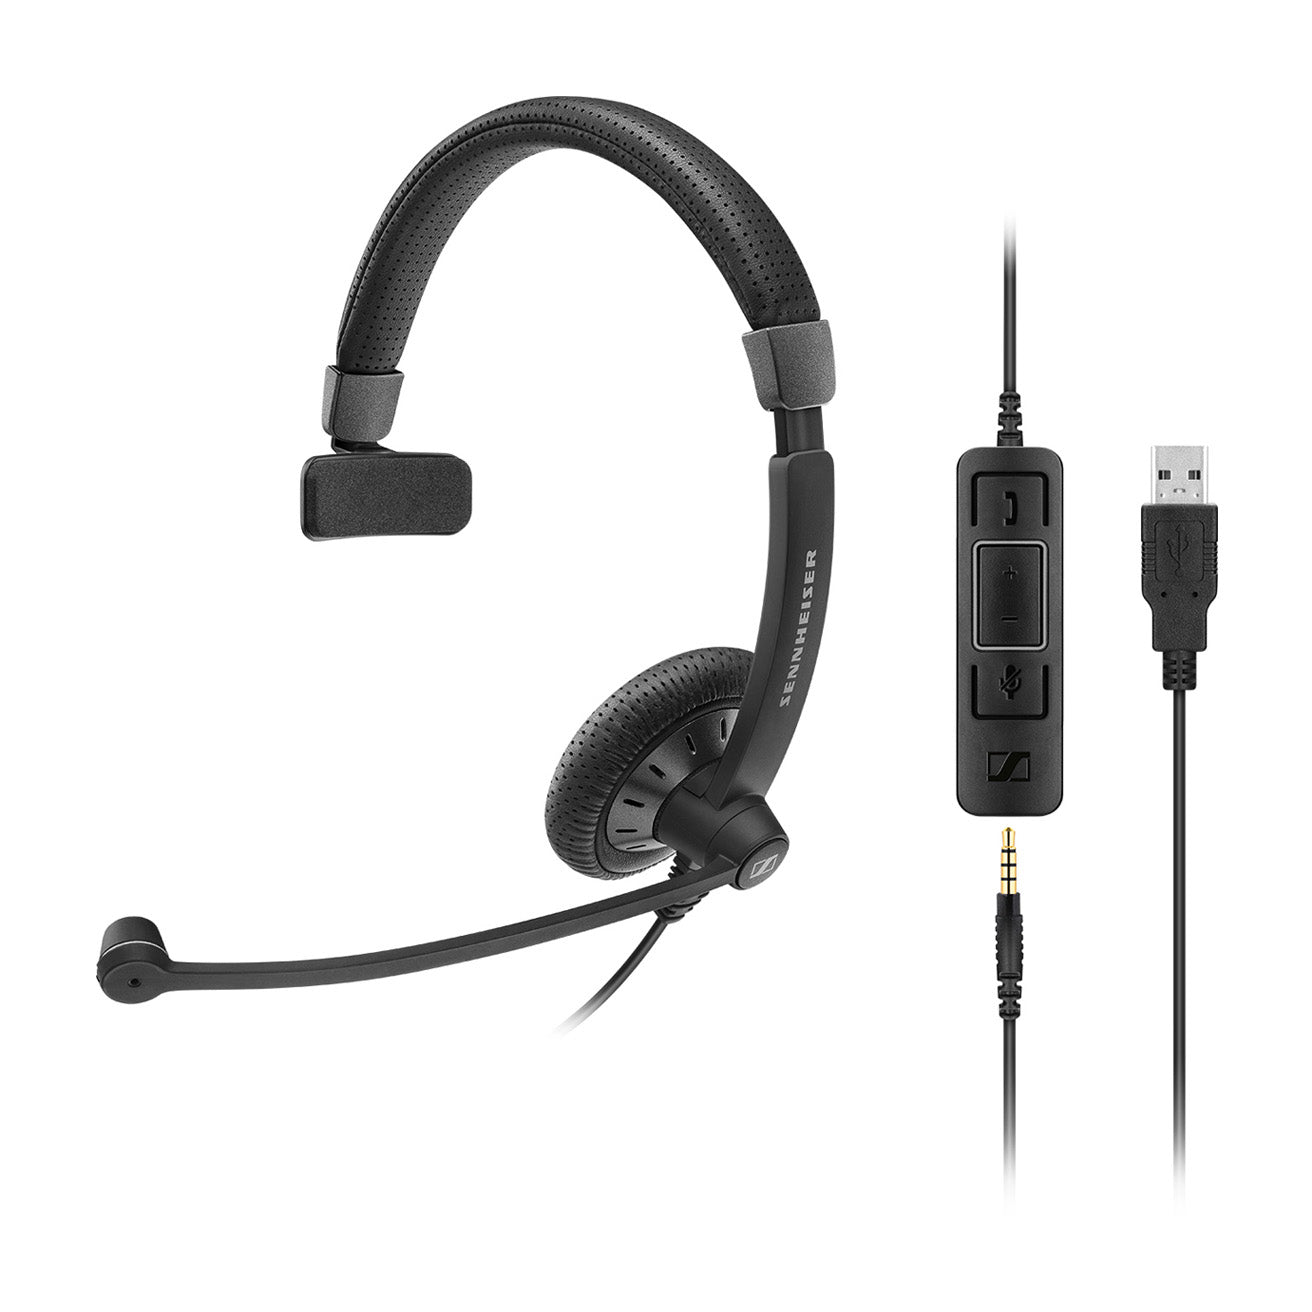 Culture Plus Series Headset - SC 45 USB CTRL